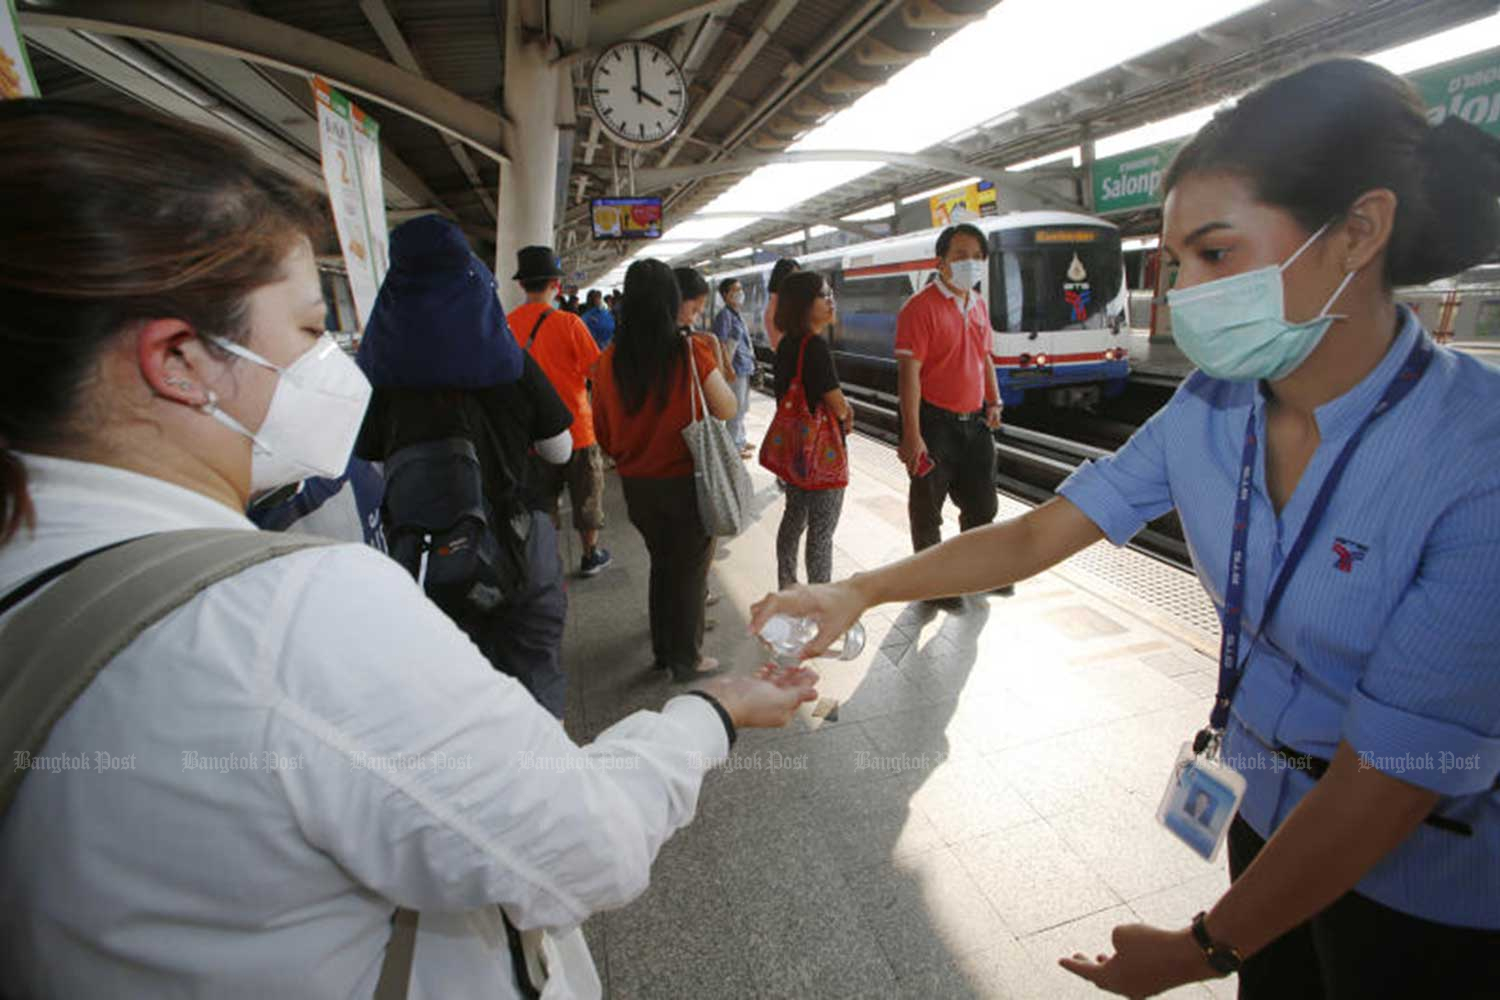 Skytrain commuters have their hands sanitised at Mor Chit BTS station as part of the prevention measures against the spread of Covid-19. (Bangkok Post file photo)